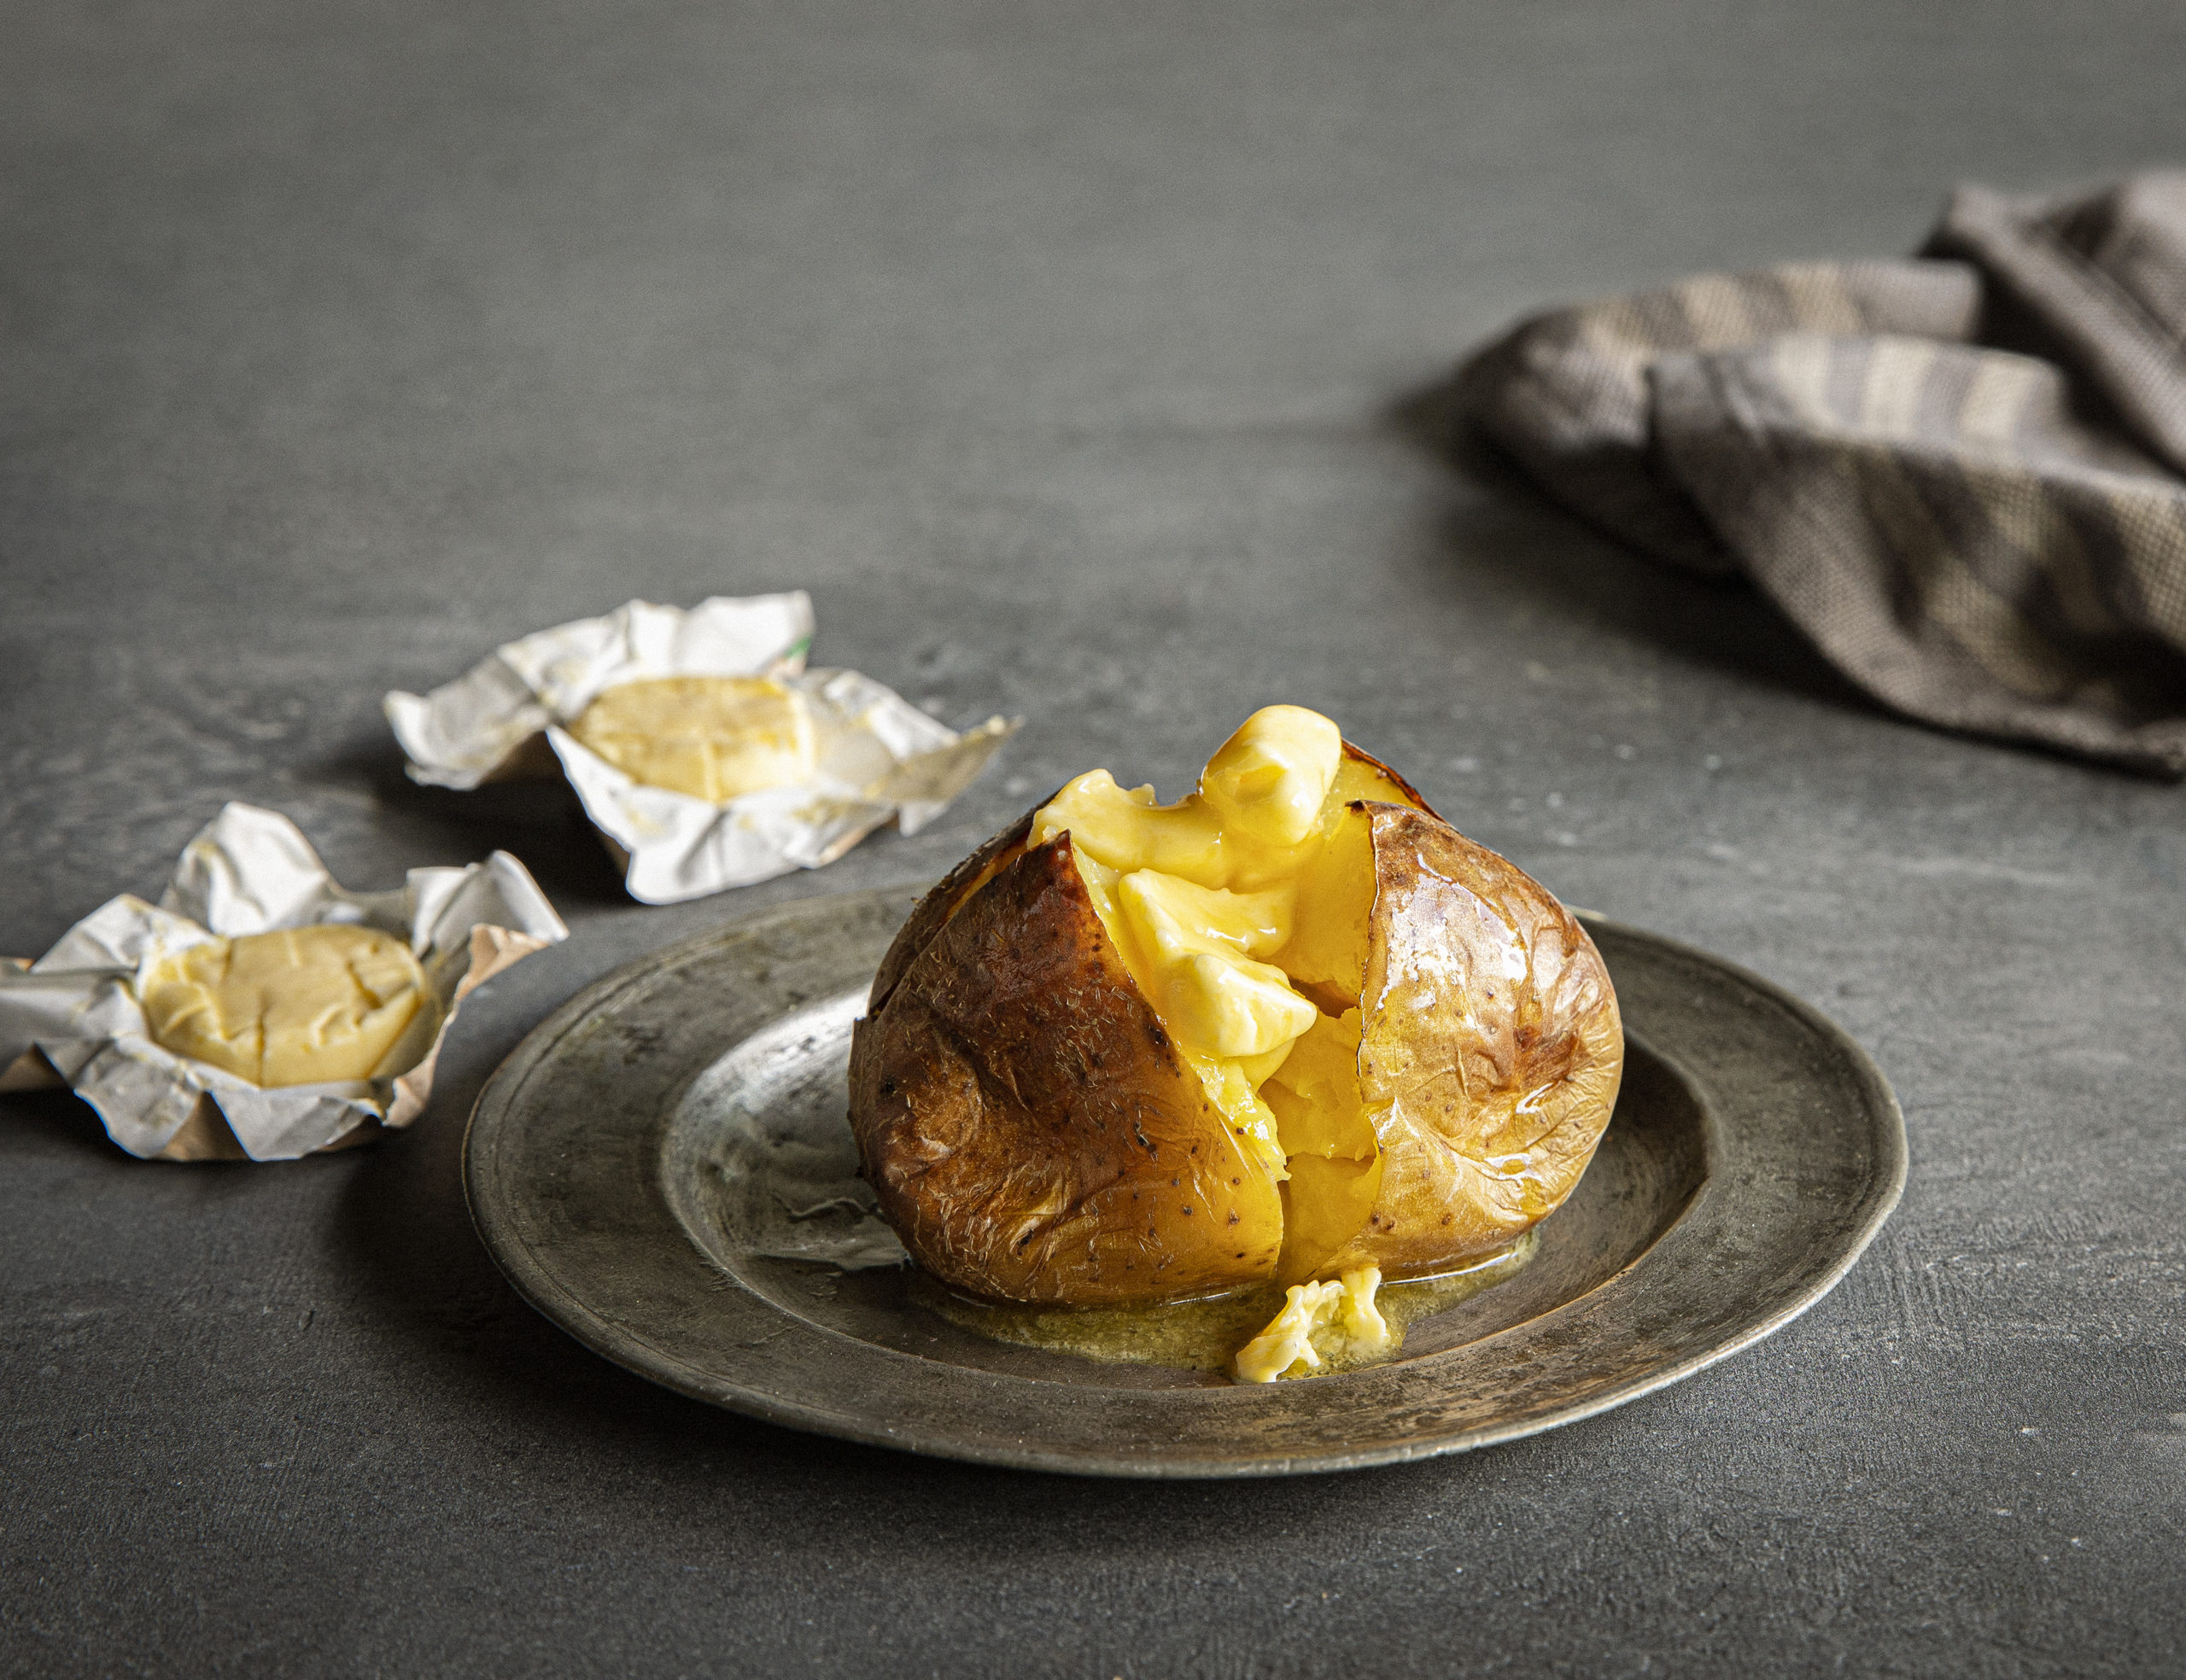 A jacket potato soaked in butter, with butter in the background in its packet.